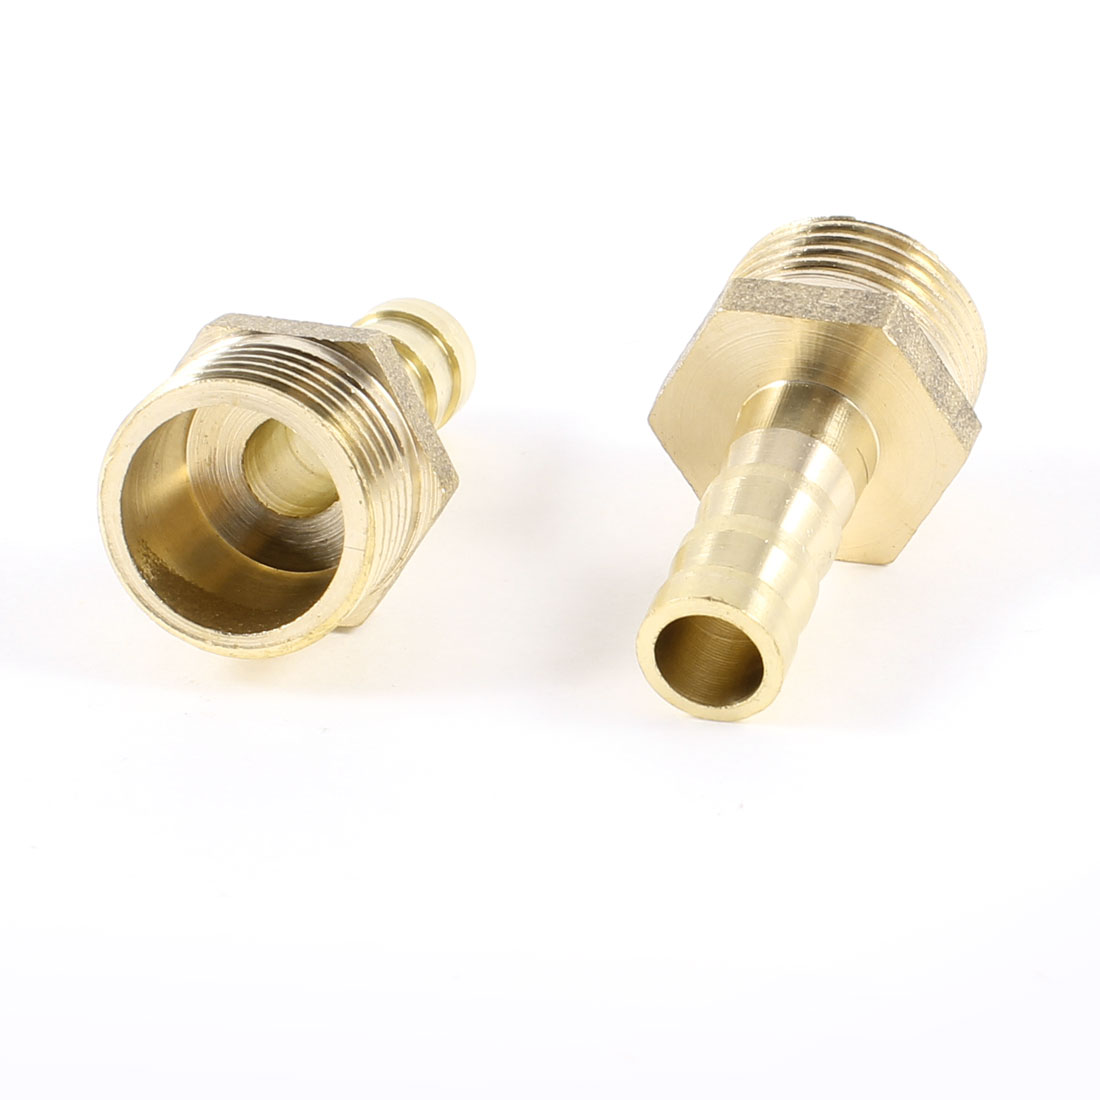 "8mm Diameter Hose Barb to 3/8"" PT Male Thread Brass Couplers Adapter 2 Pcs"